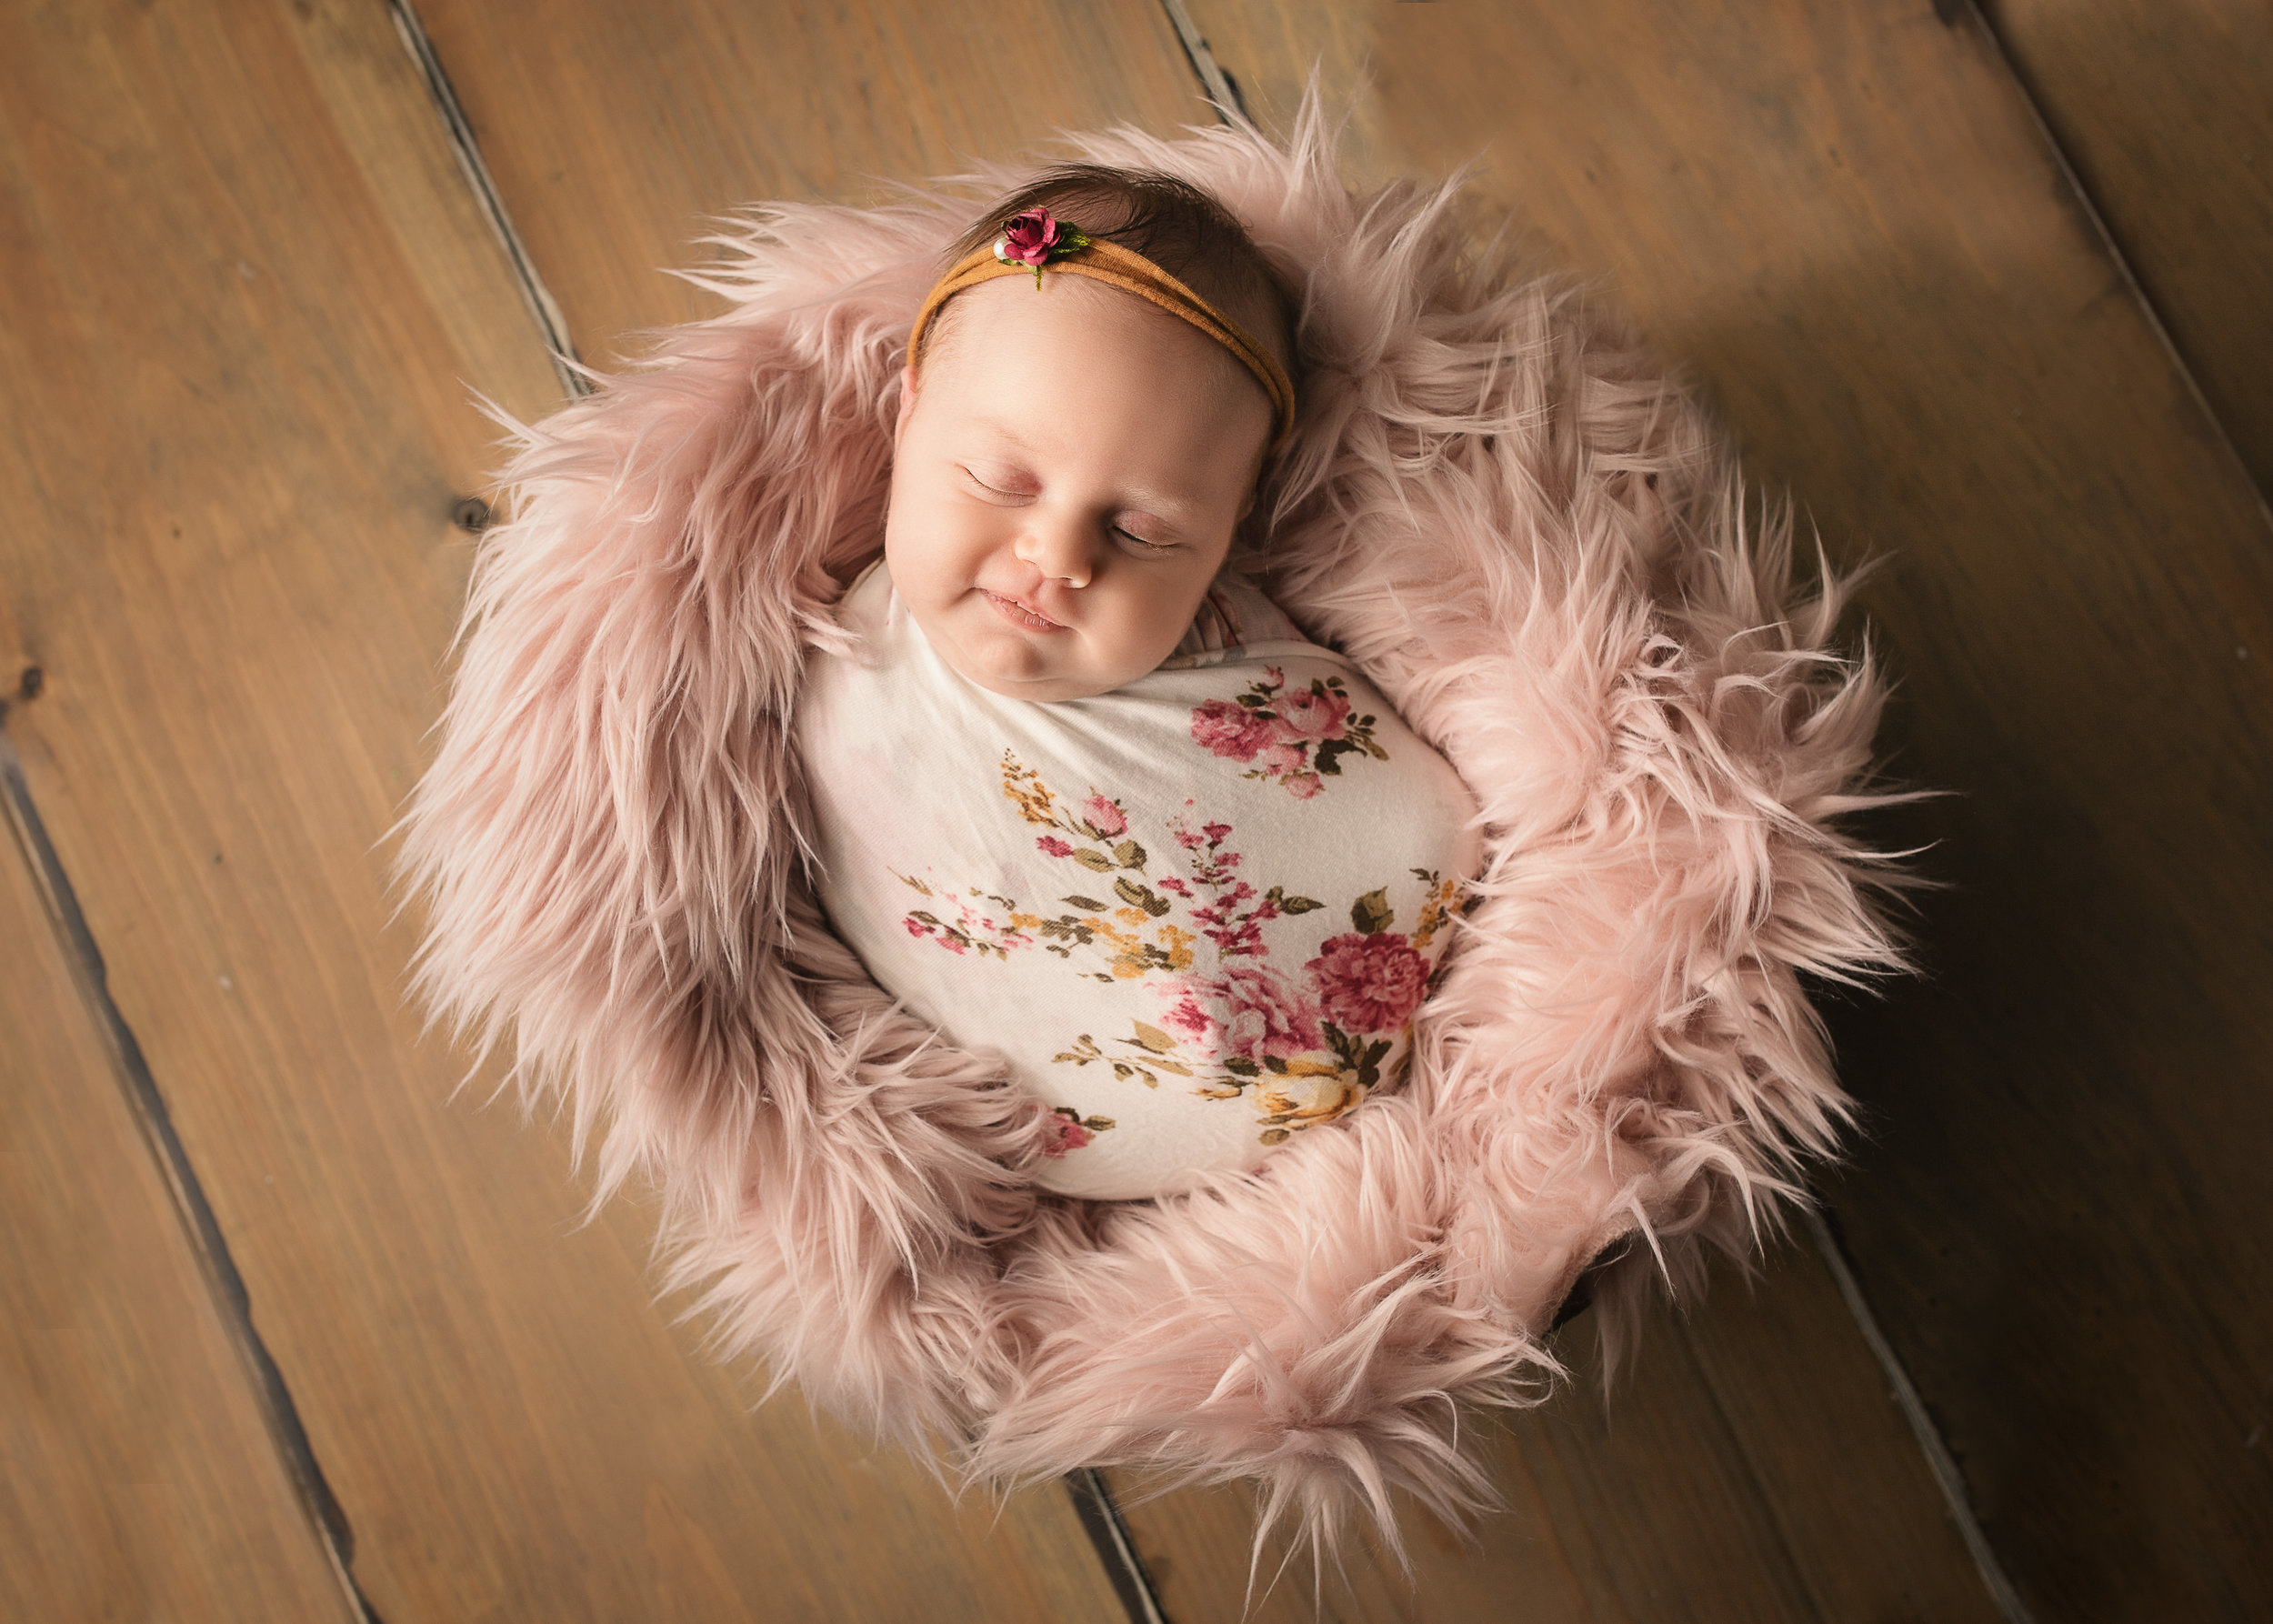 worcester_newborn_photographer_baby_girl_boston_ma_photos_6.jpg